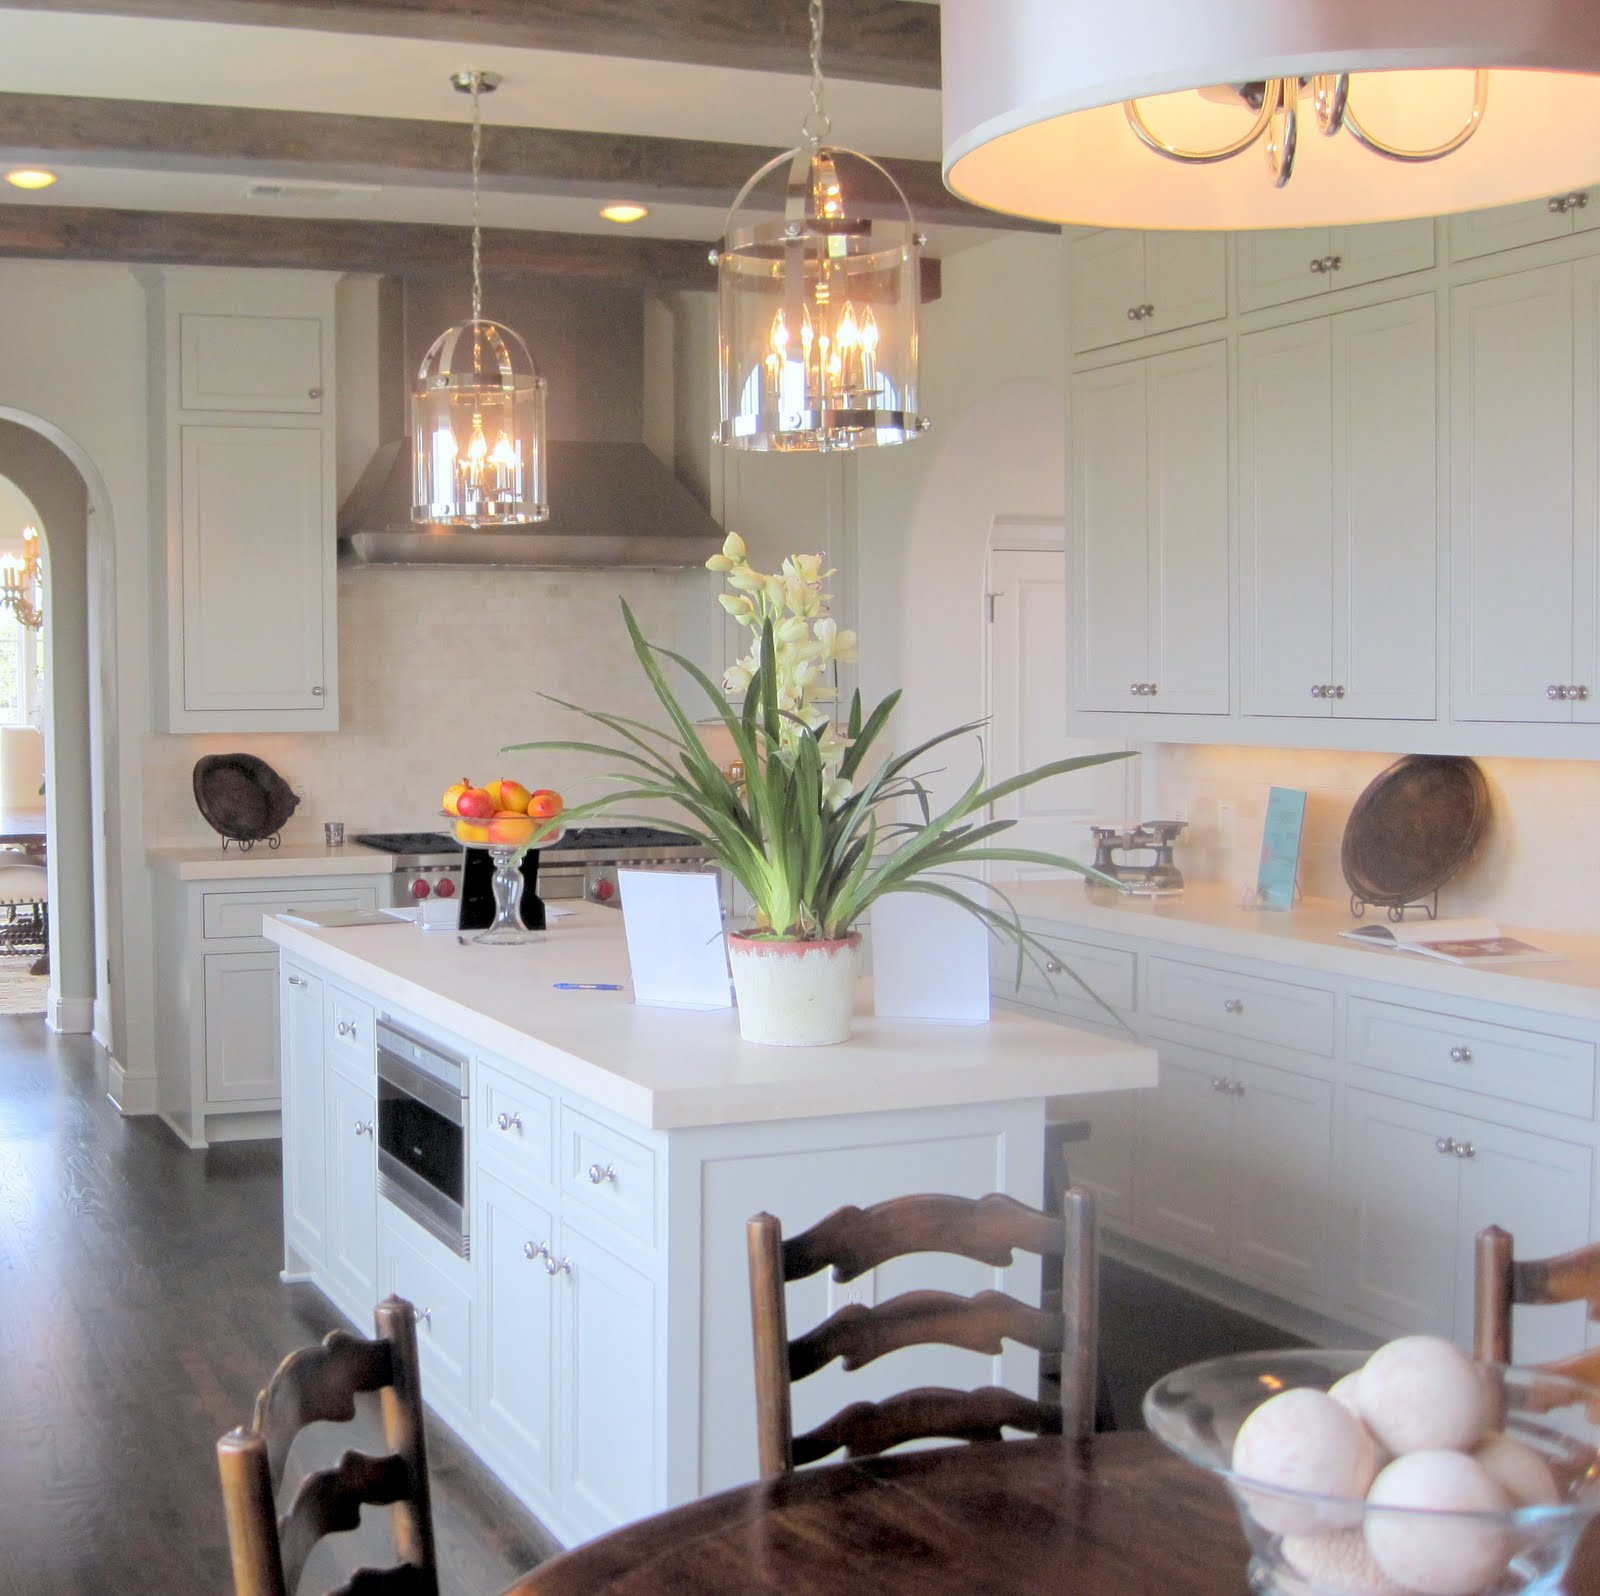 Kitchen Pendant Light Fixture | HomesFeed